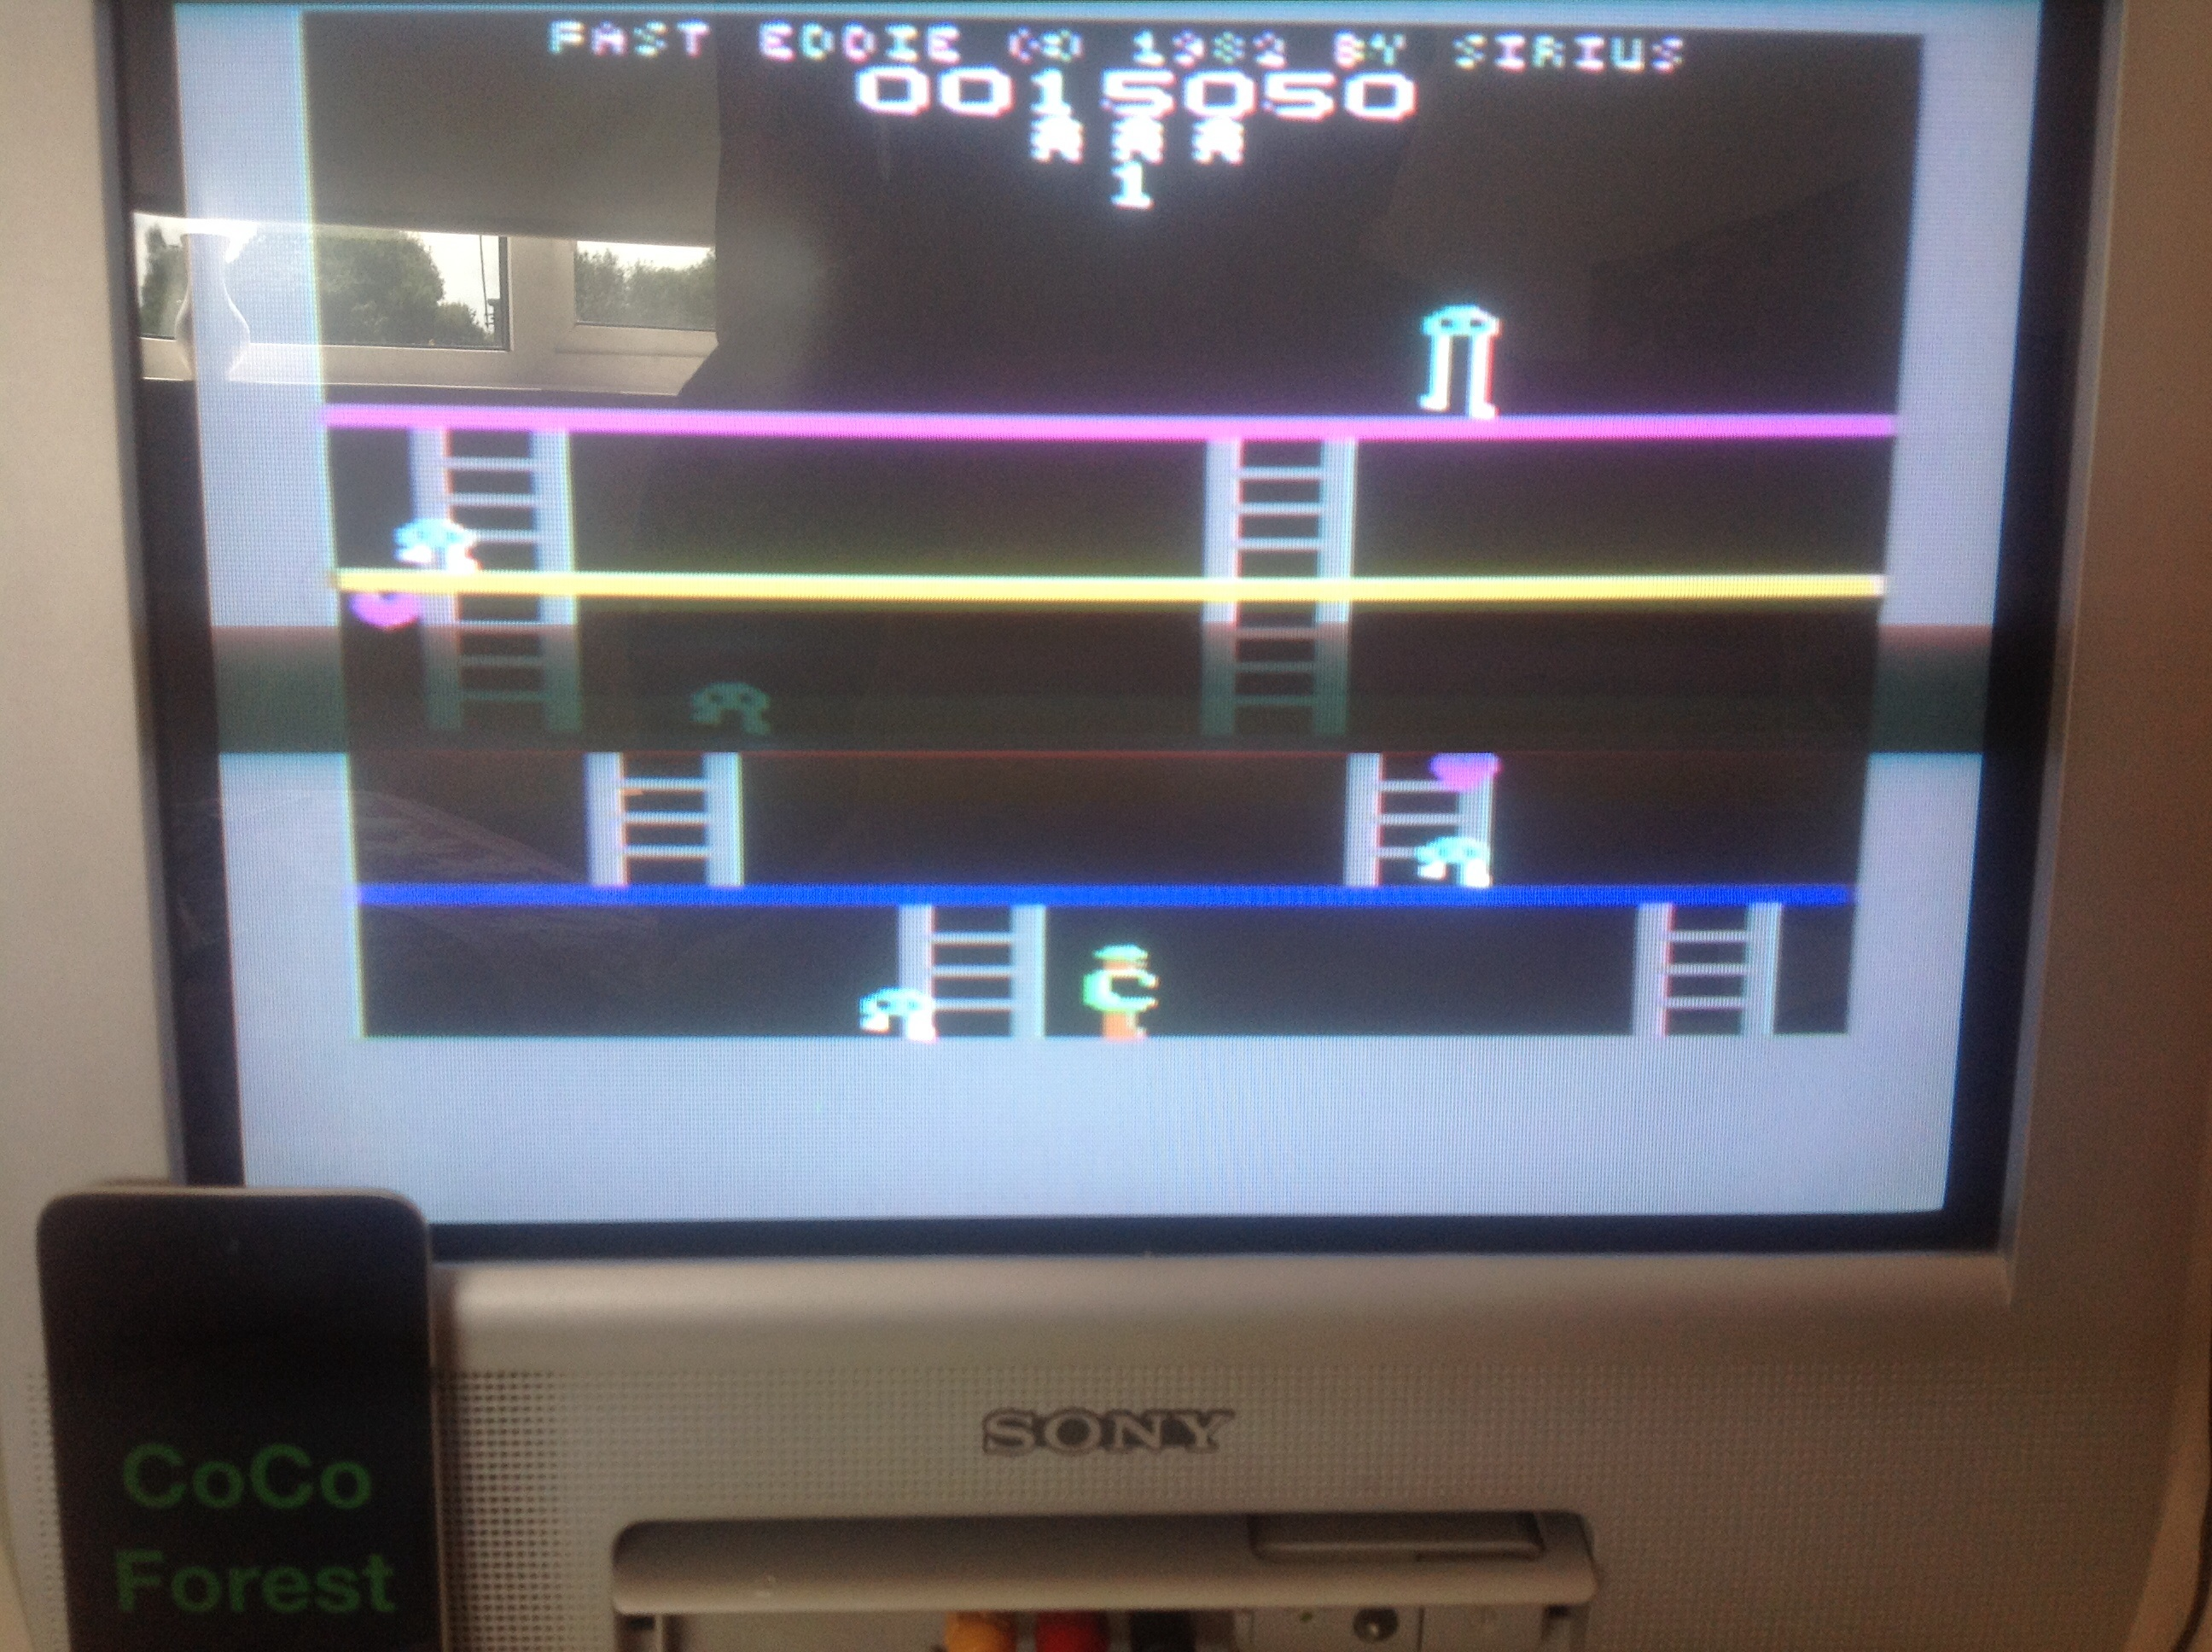 CoCoForest: Fast Eddie (Commodore 64) 15,050 points on 2014-08-07 08:15:14